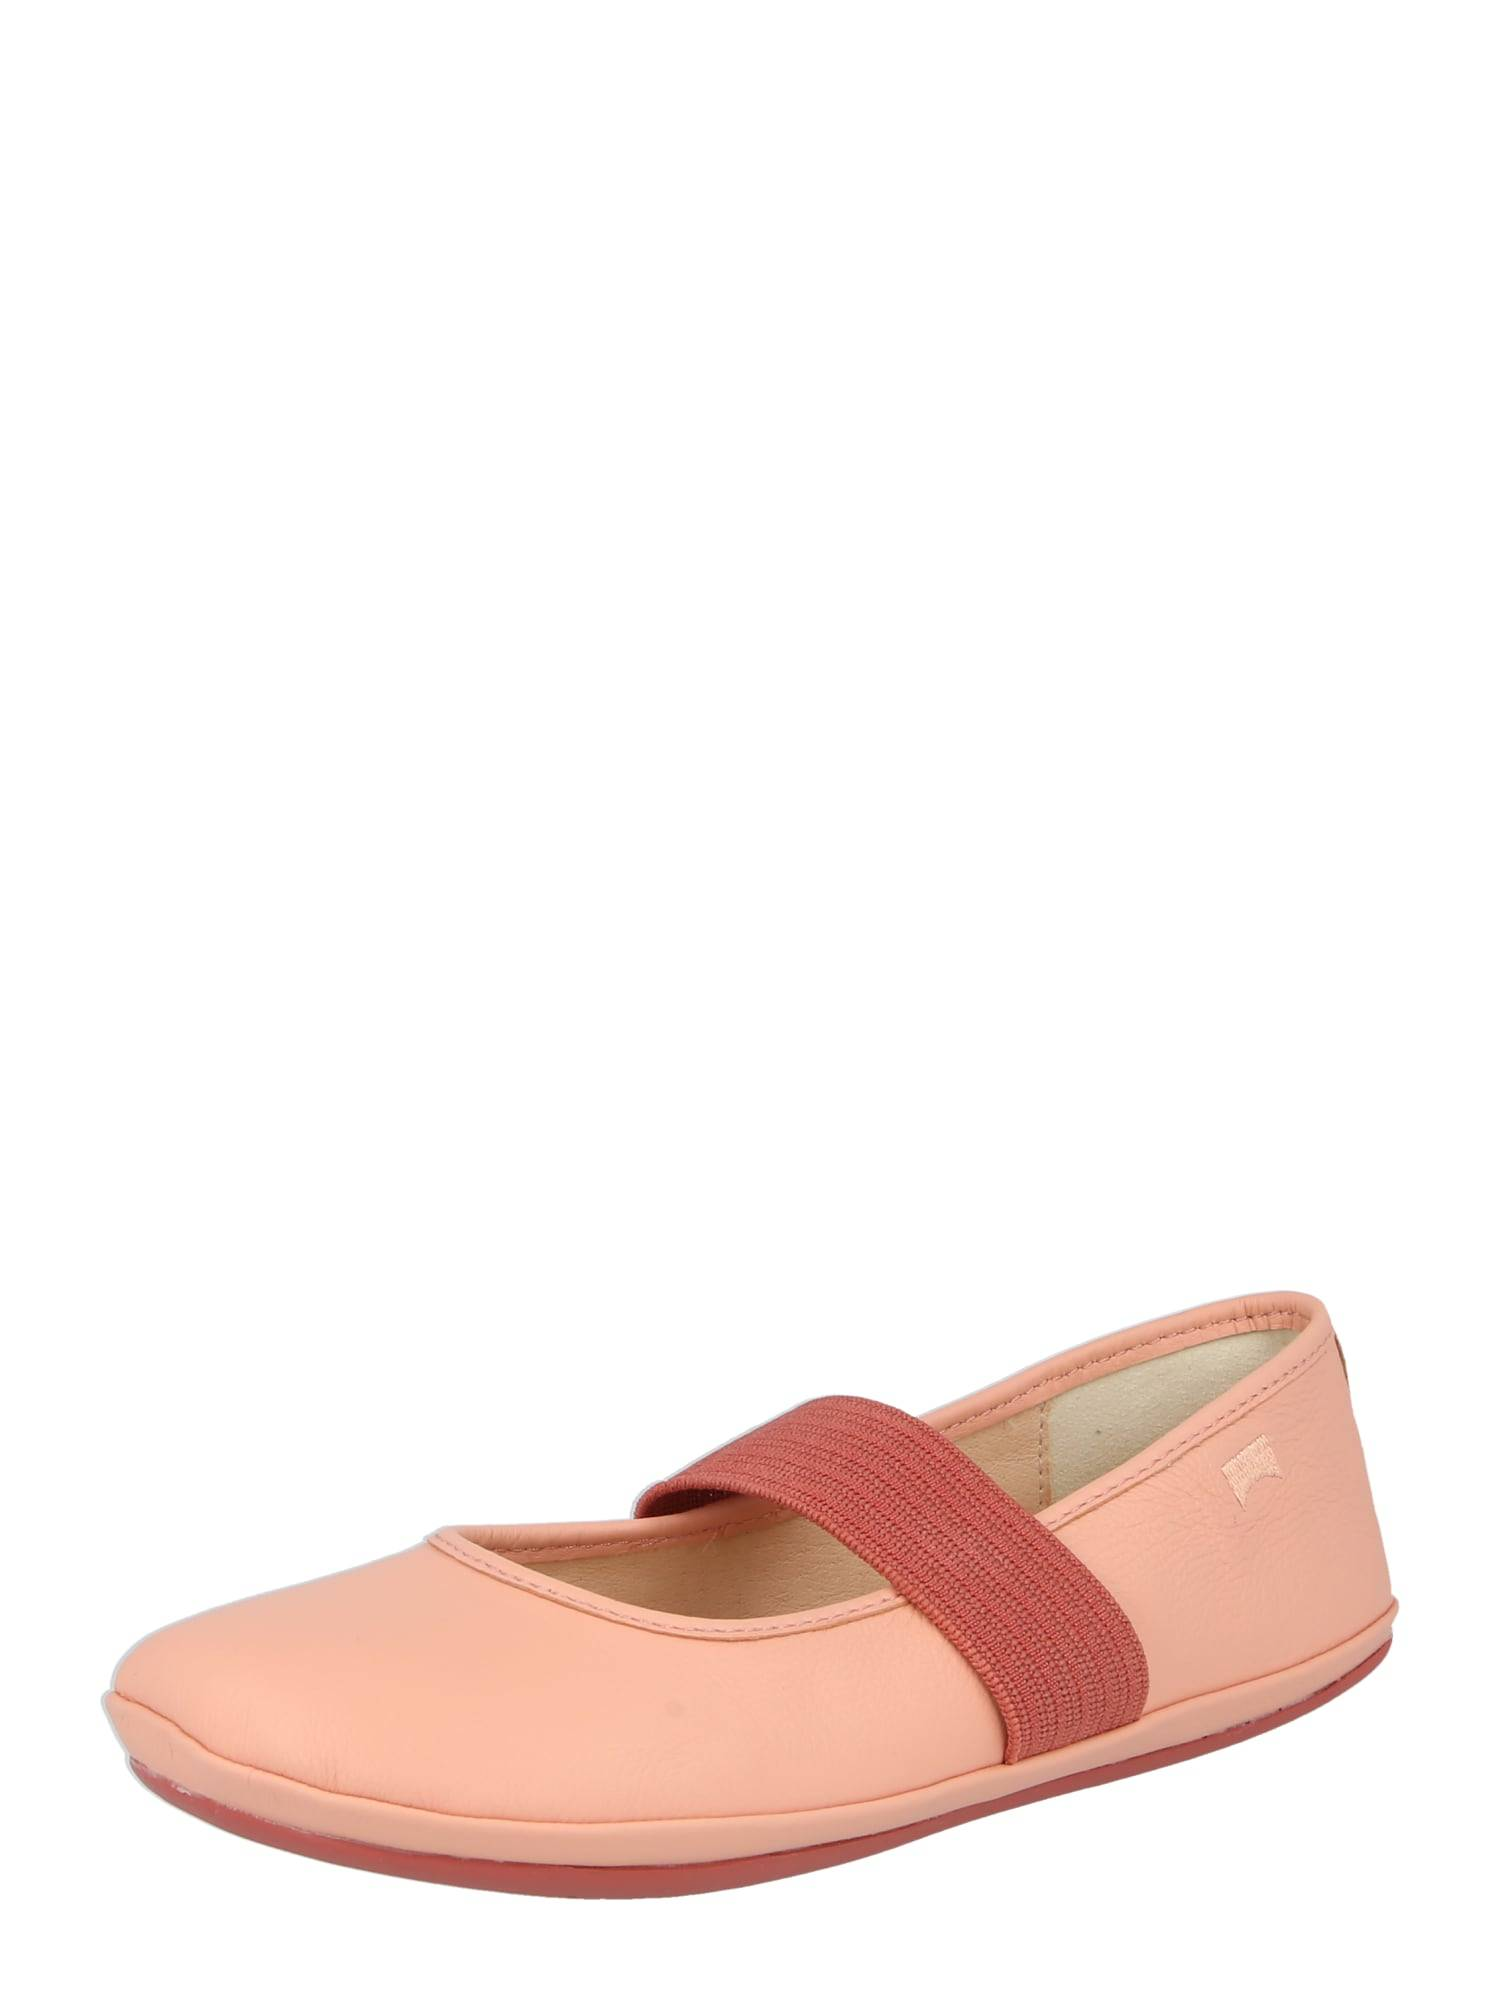 CAMPER Ballerines ' Right '  - Rose - Taille: 29 - girl